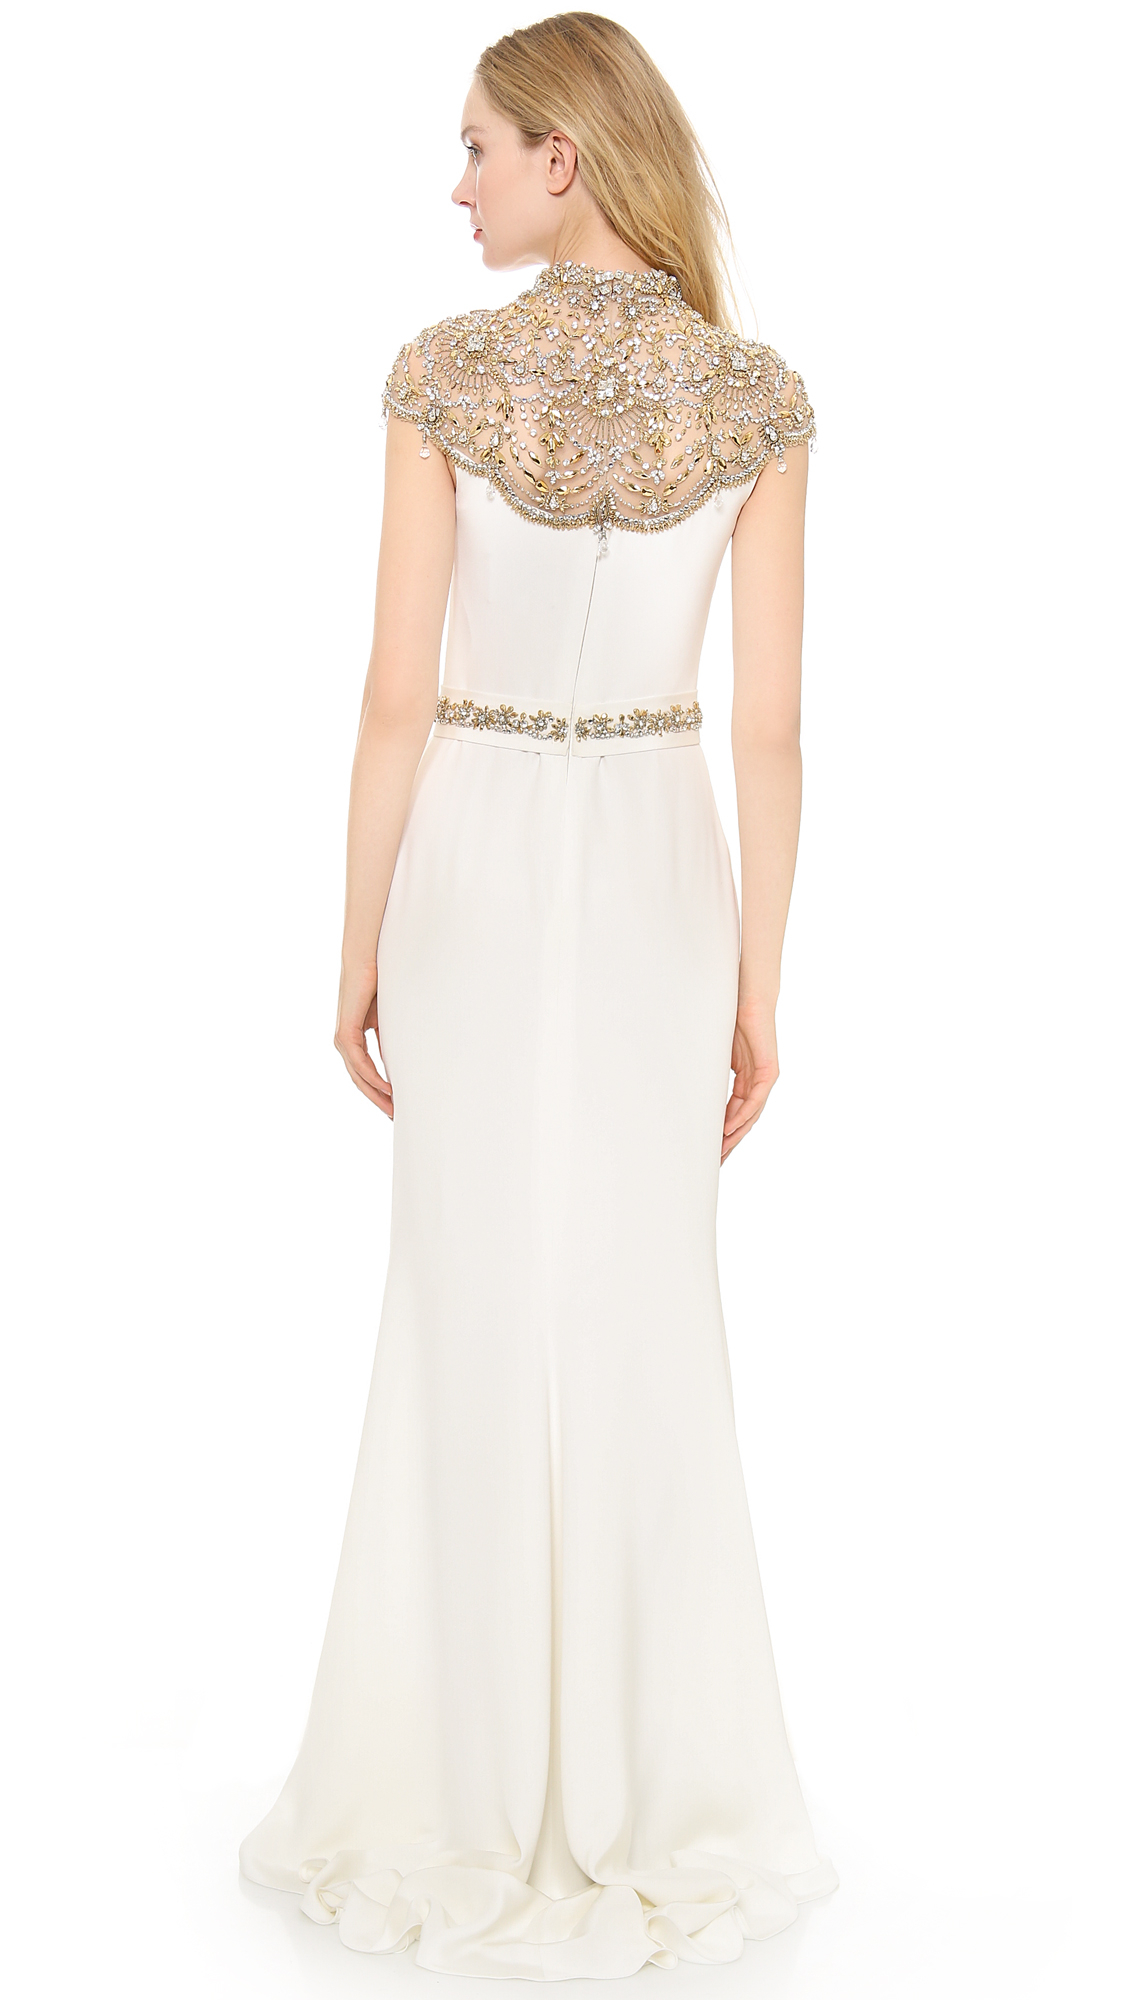 Lyst - Reem acra Silk Crepe Gown in White